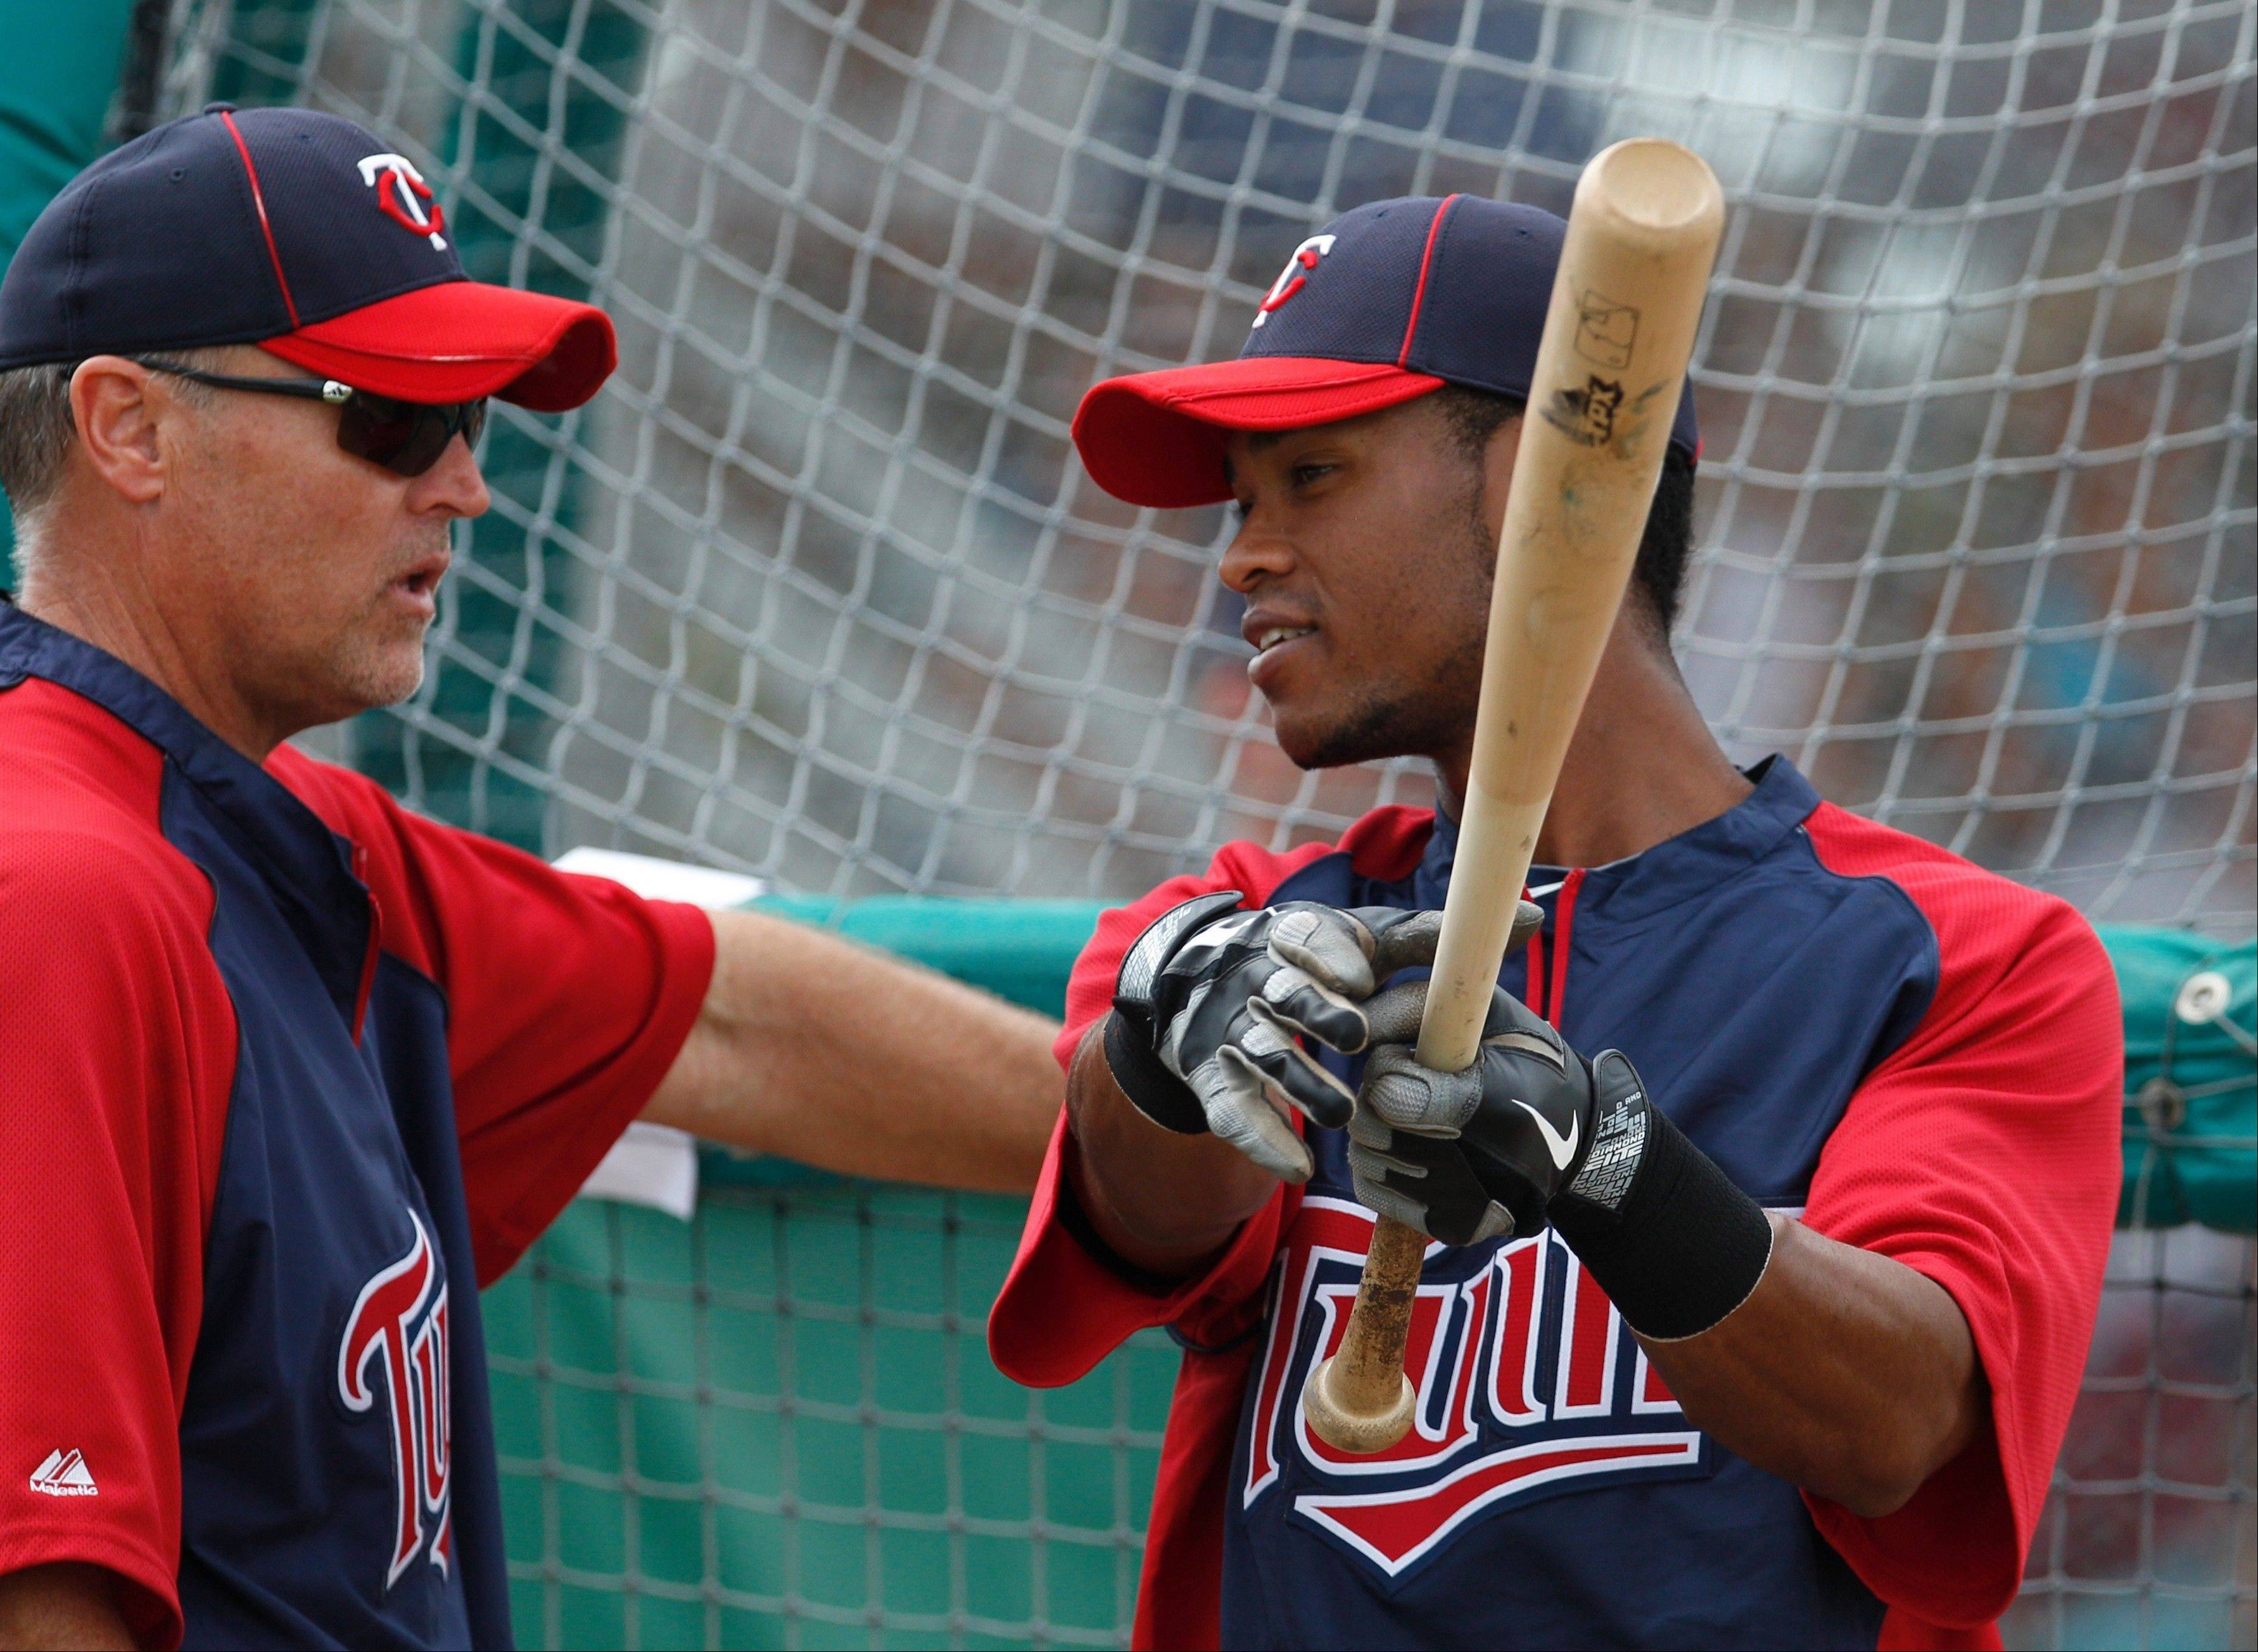 Minnesota Twins Pedro Florimon works with Tom Brunansky during a 2012 spring training session. Brunansky was hired Monday as the new hitting coach for the Twins.